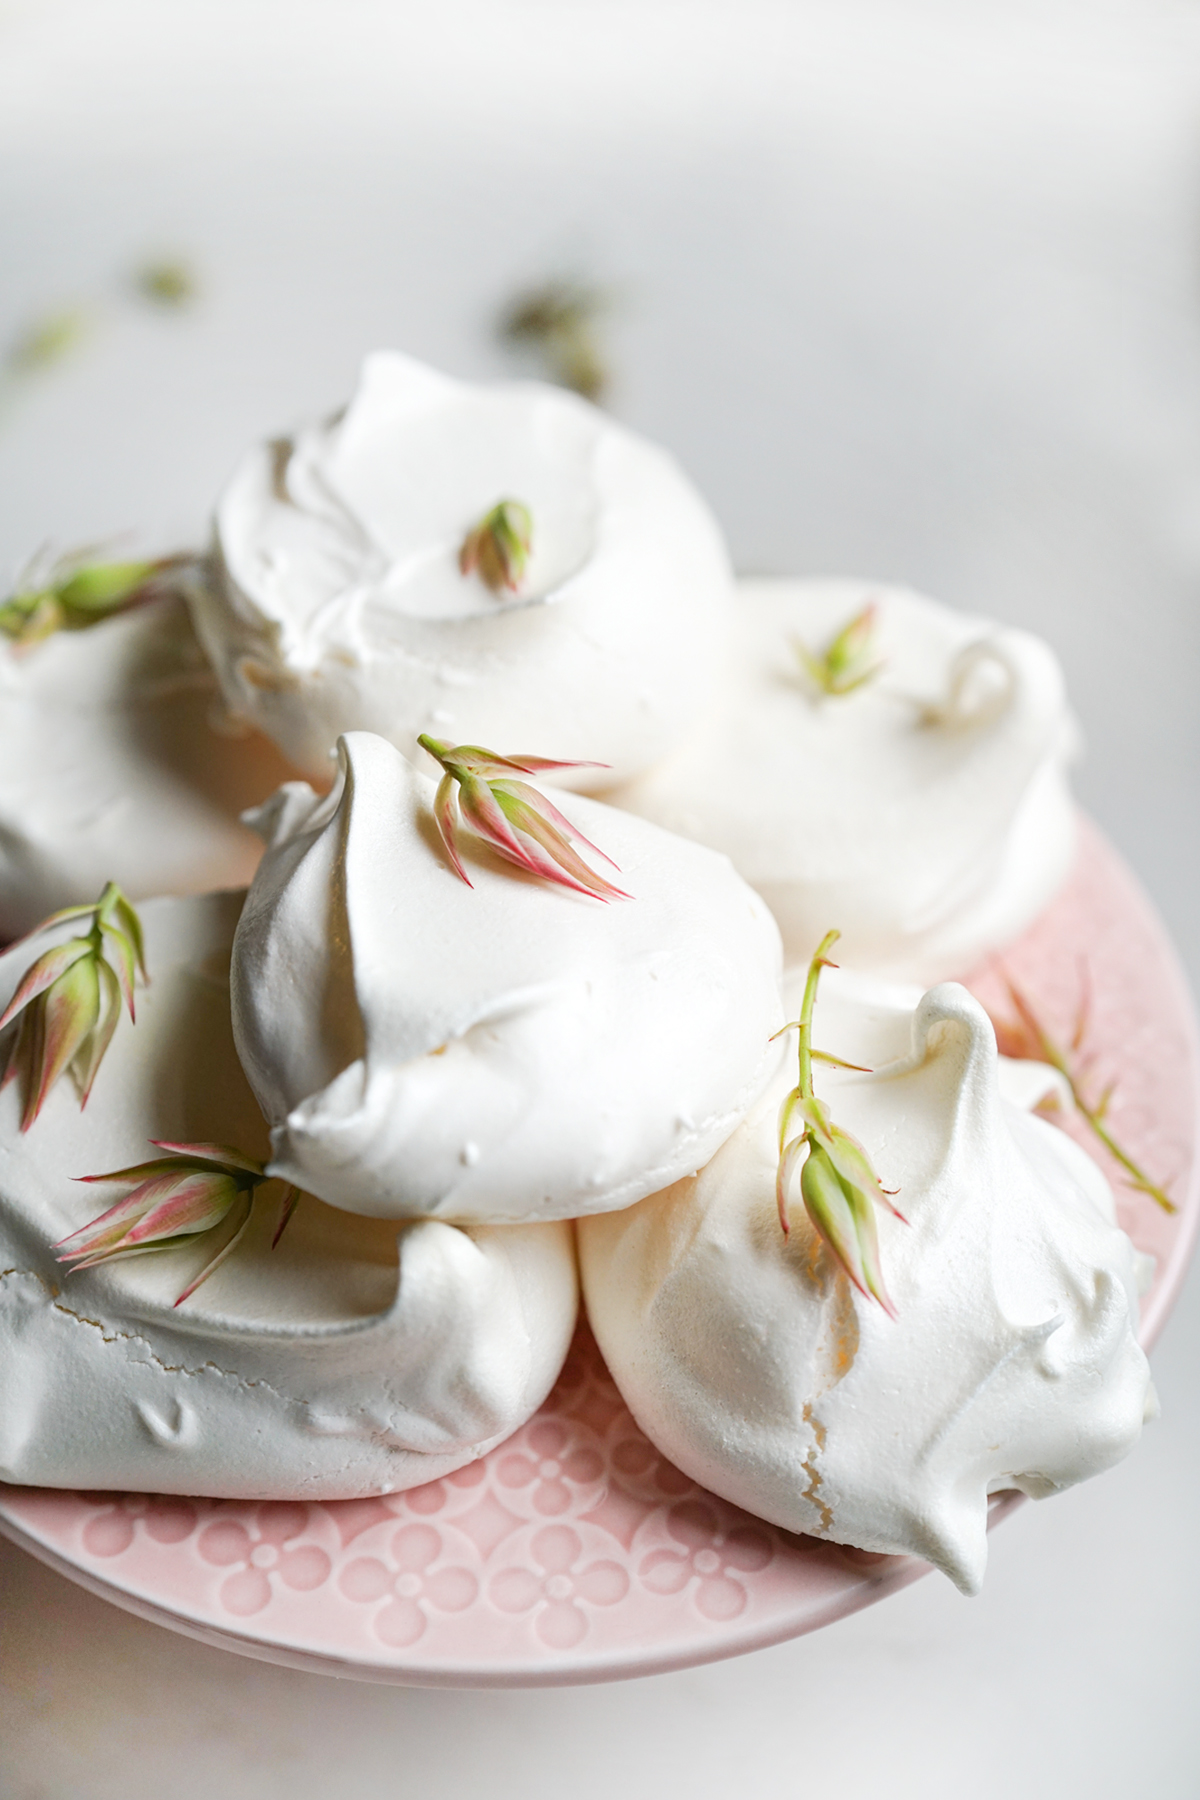 rustic meringues made with easy recipe for perfect meringues